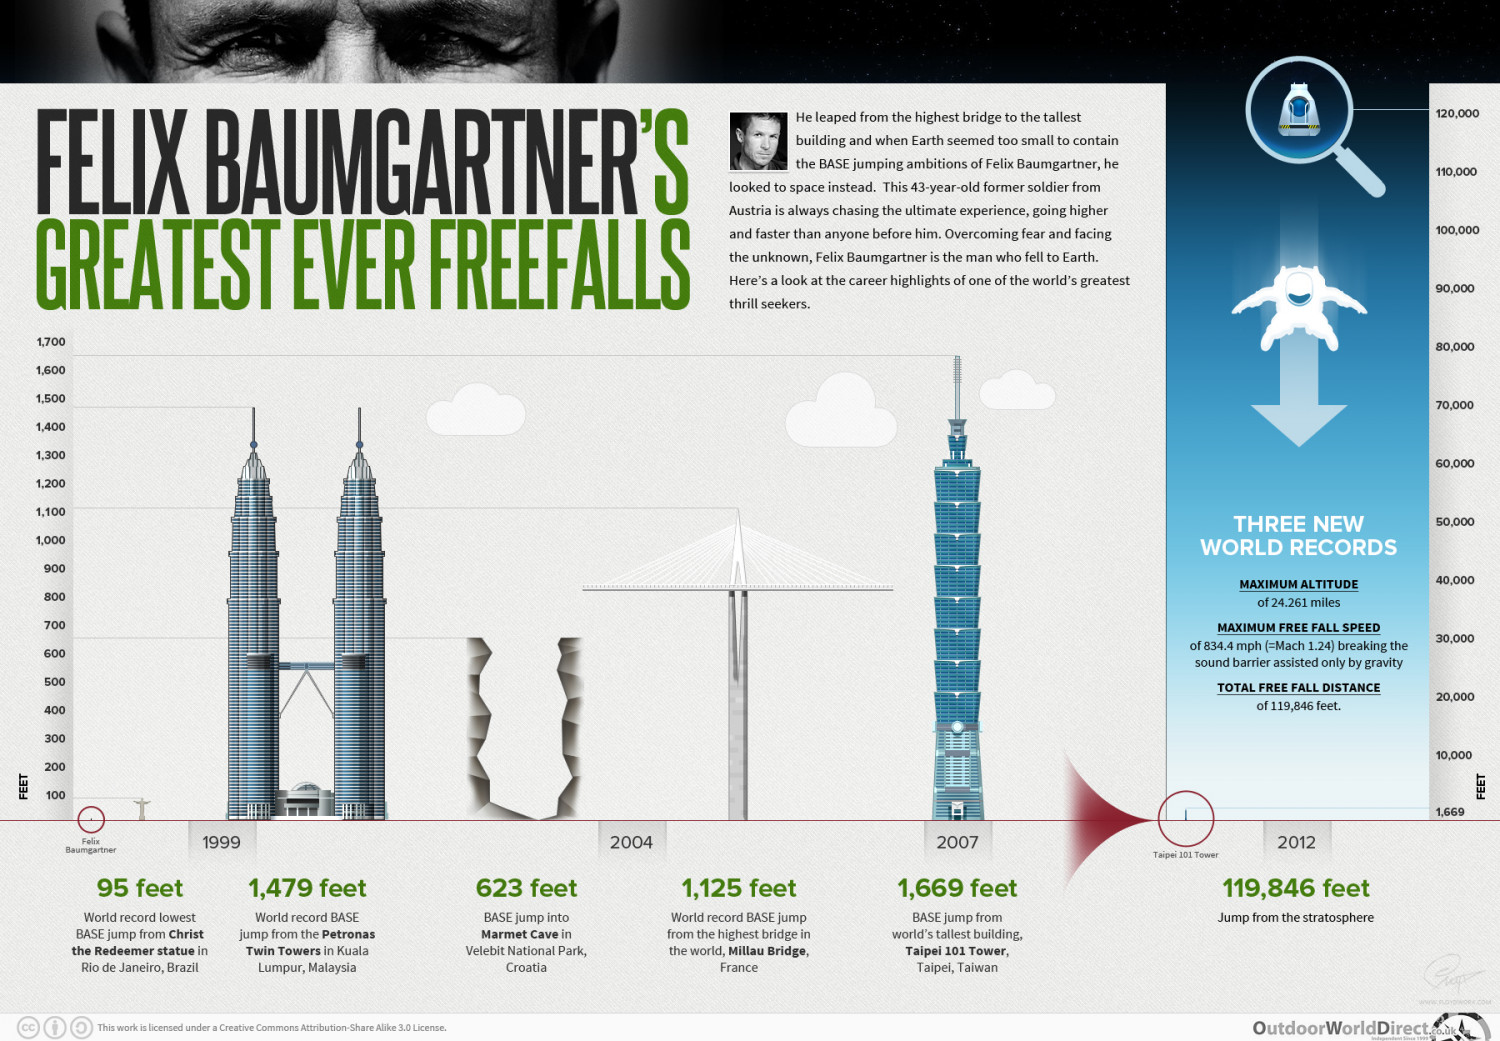 Felix Baumgartner's greatest ever freefalls Infographic